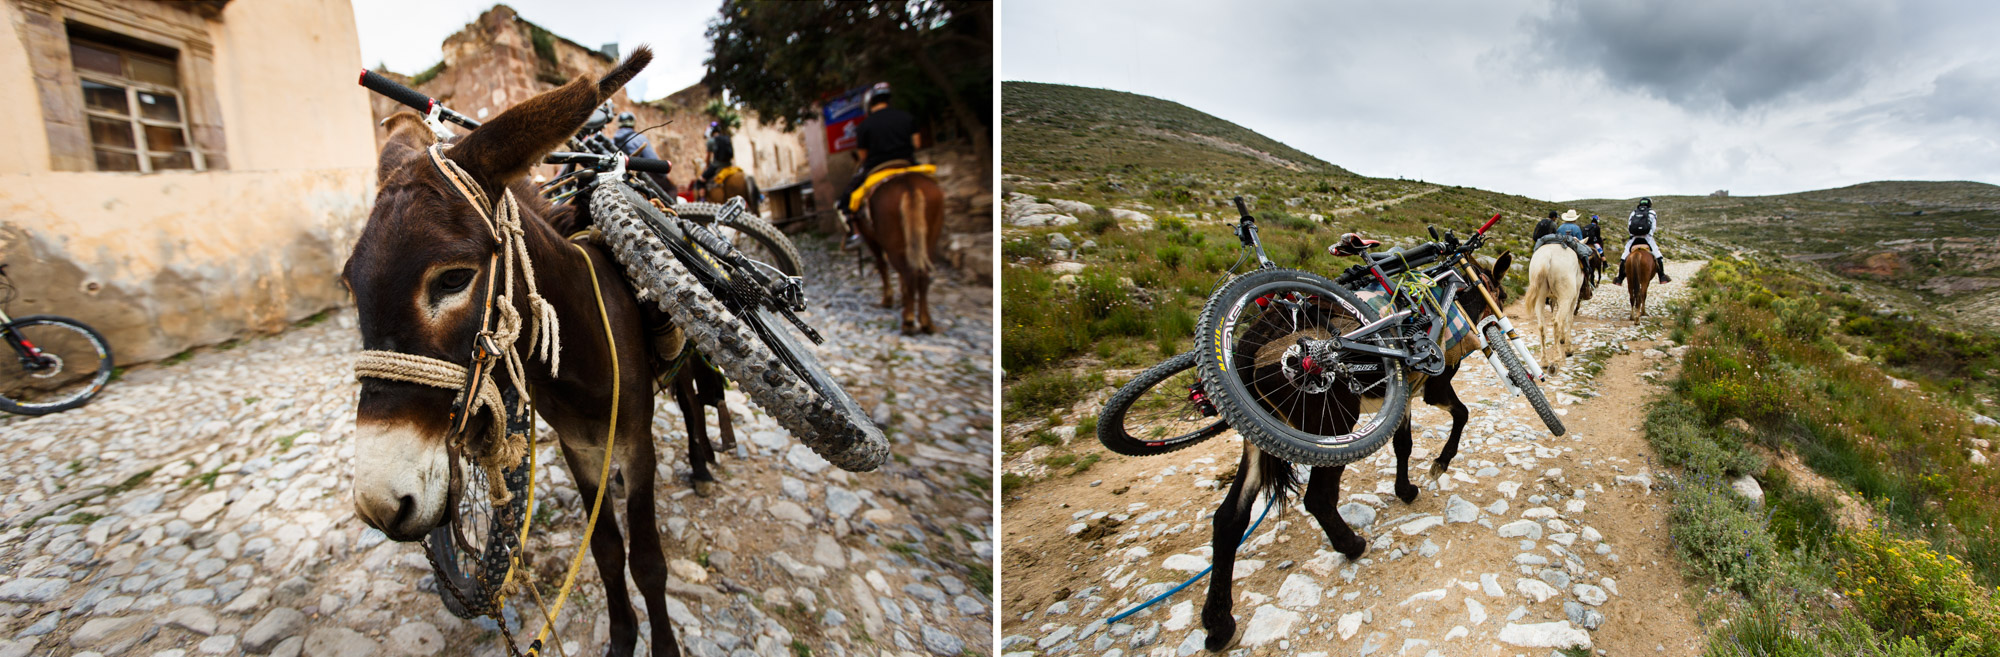 Mexico Travel Photography | Mountain Bike